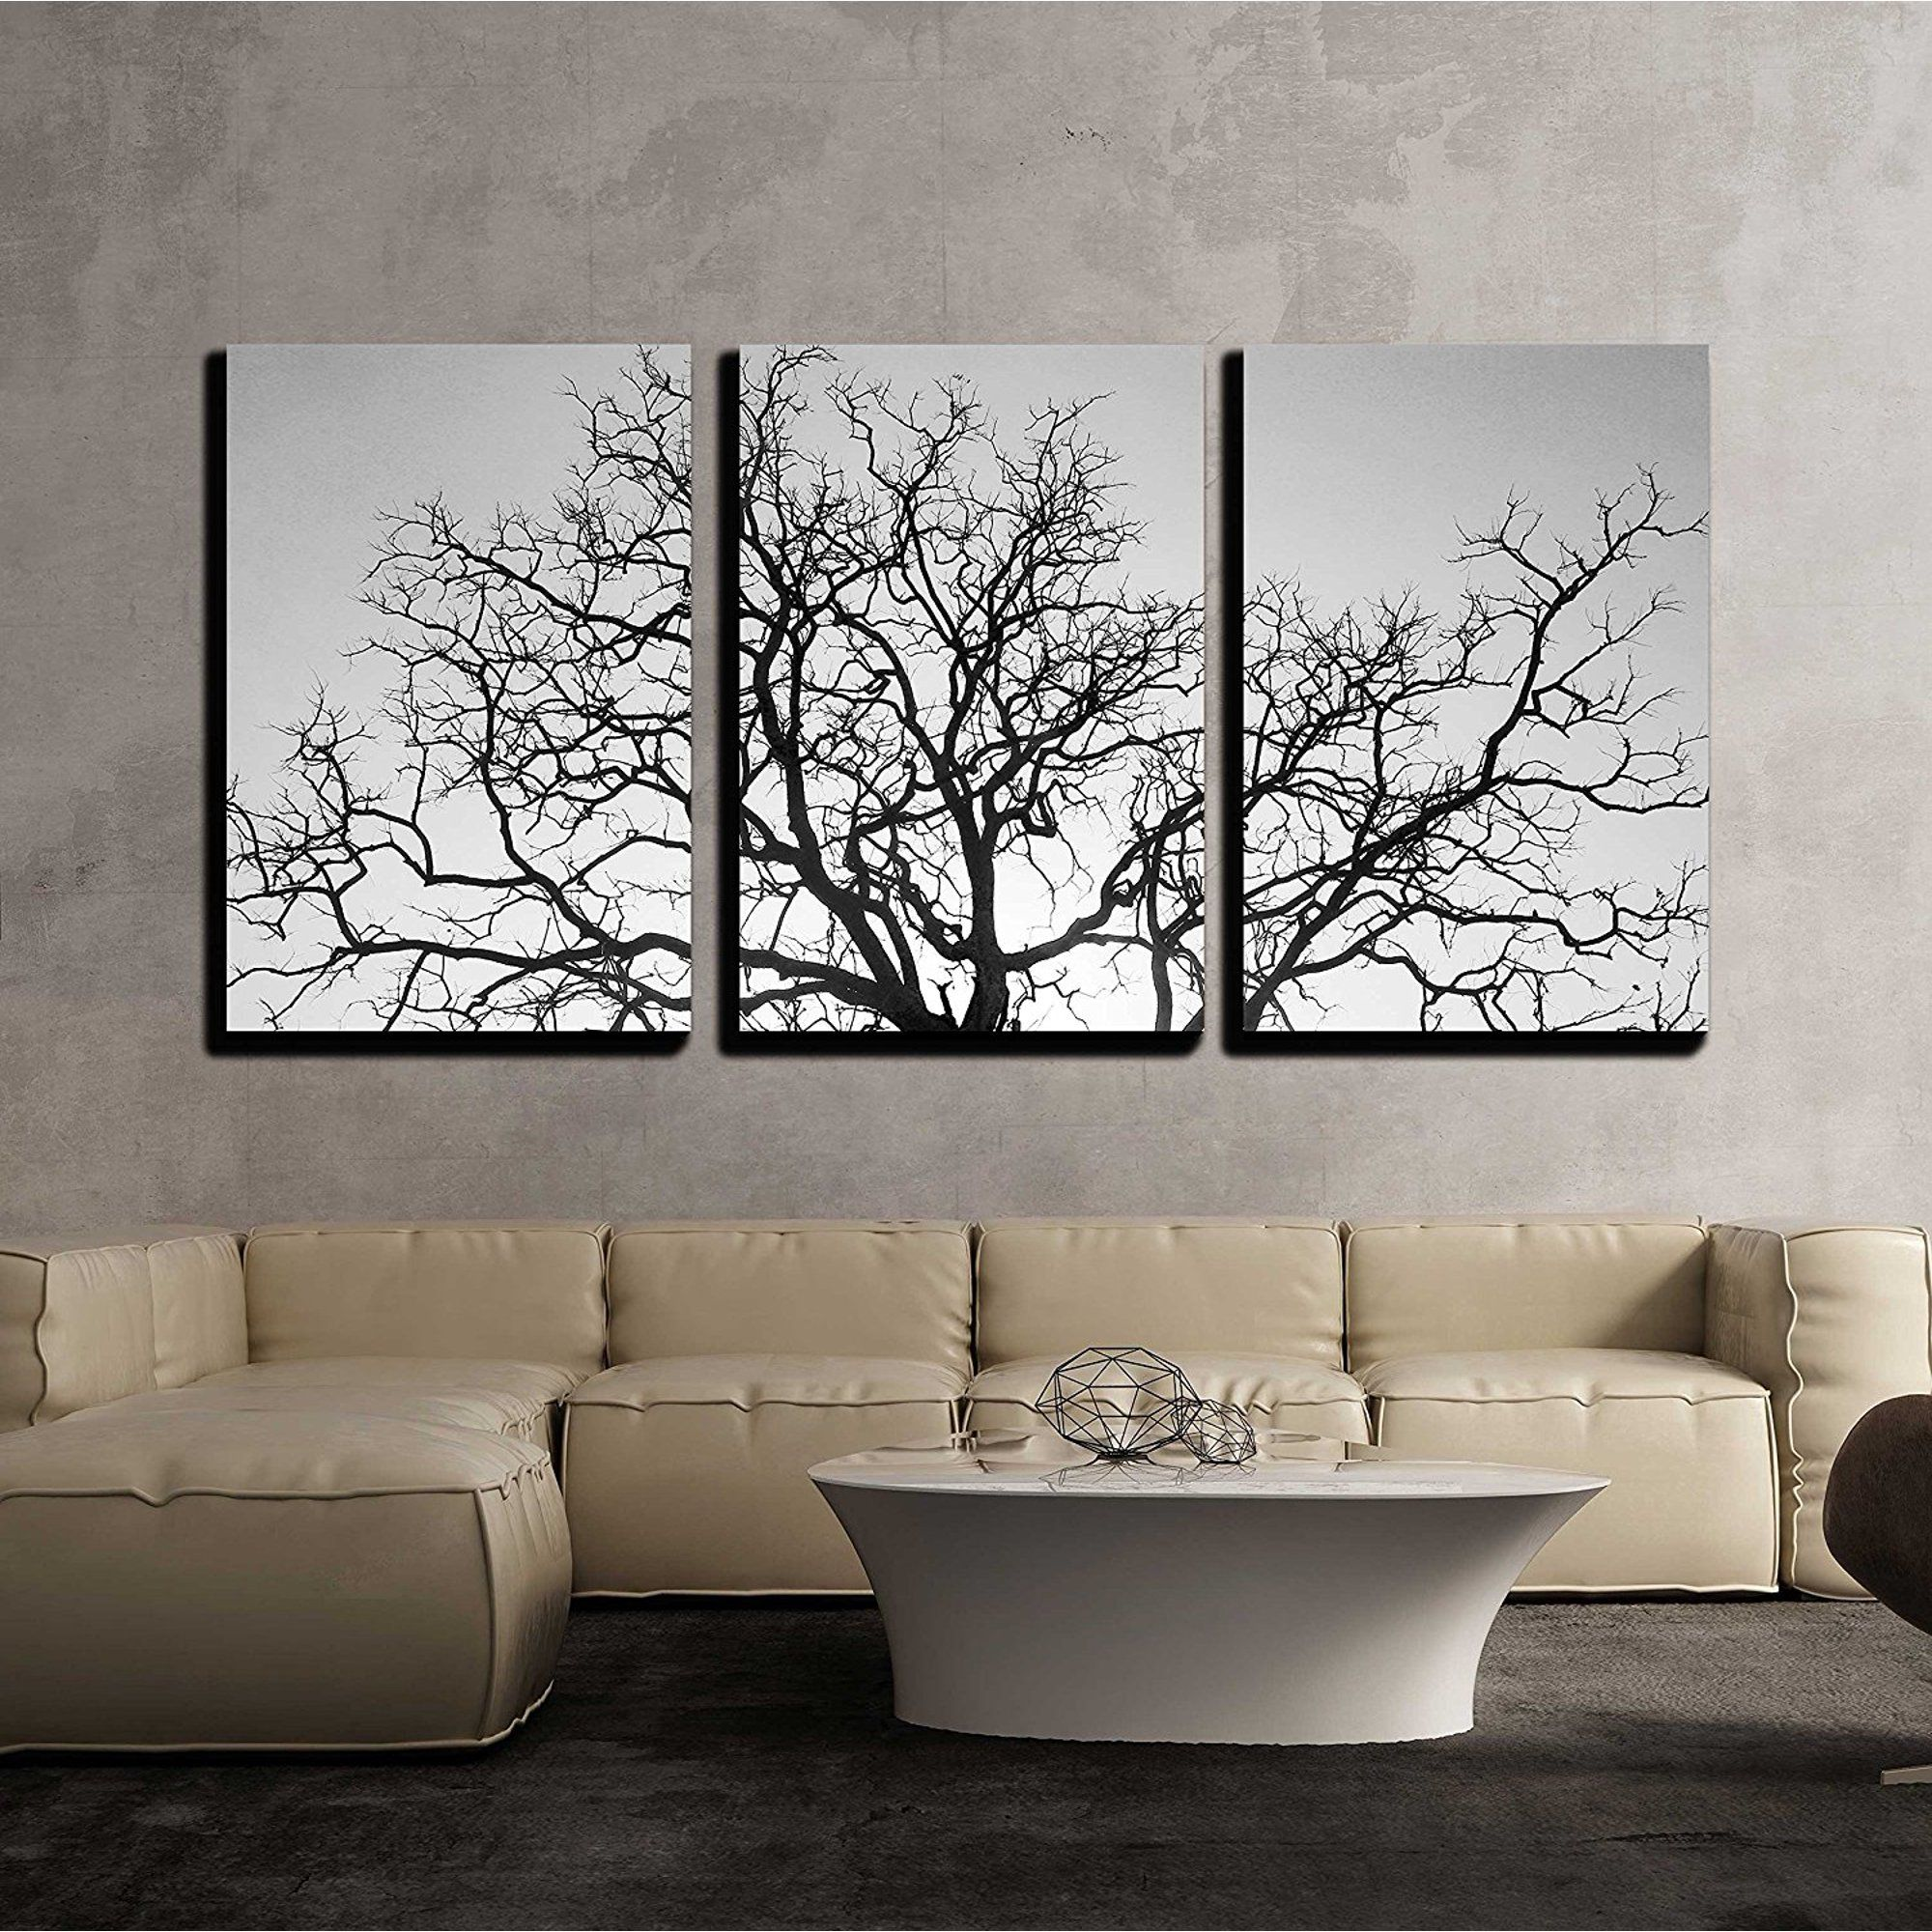 Wall26 3 Piece Canvas Wall Art Dead Tree Branch Black And White Modern Home Decor Stretched And Framed Ready To Hang 24 X36 X3 Panels Walmart Com Large Wall